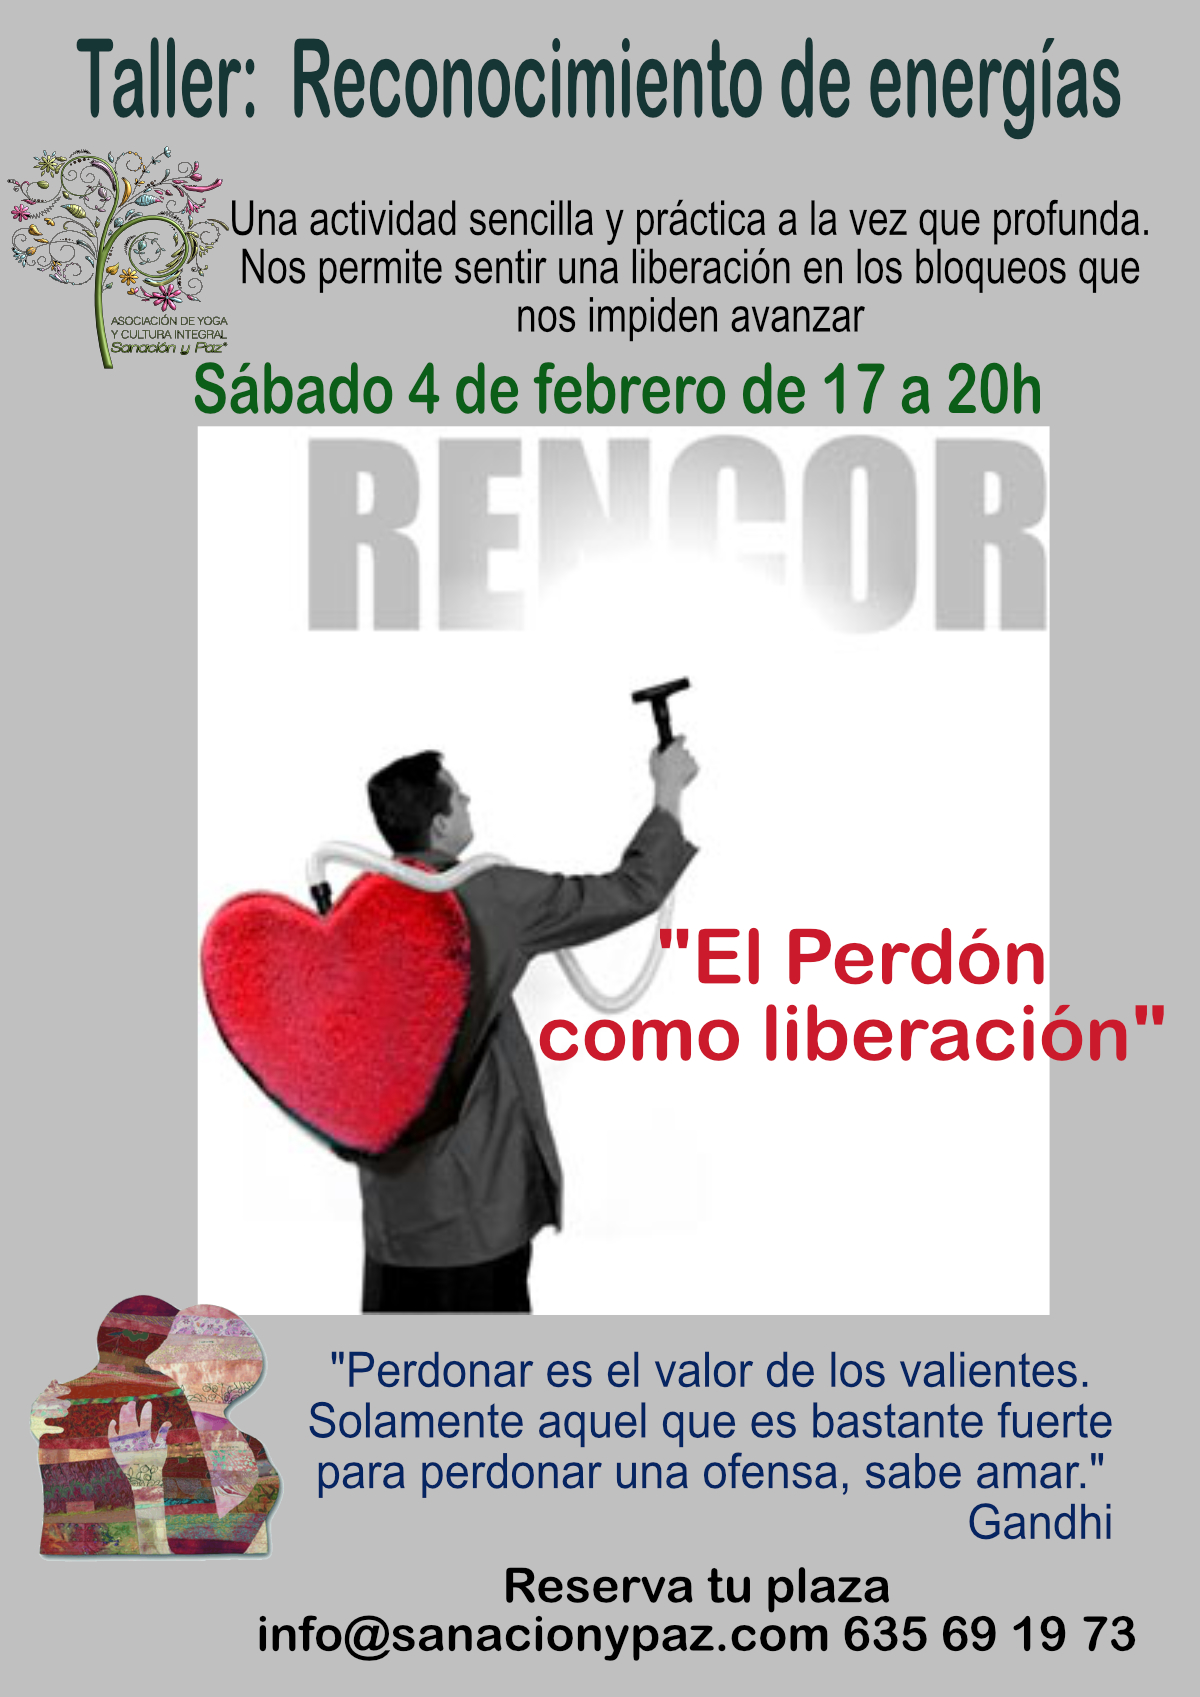 taller-energias-el-perdon